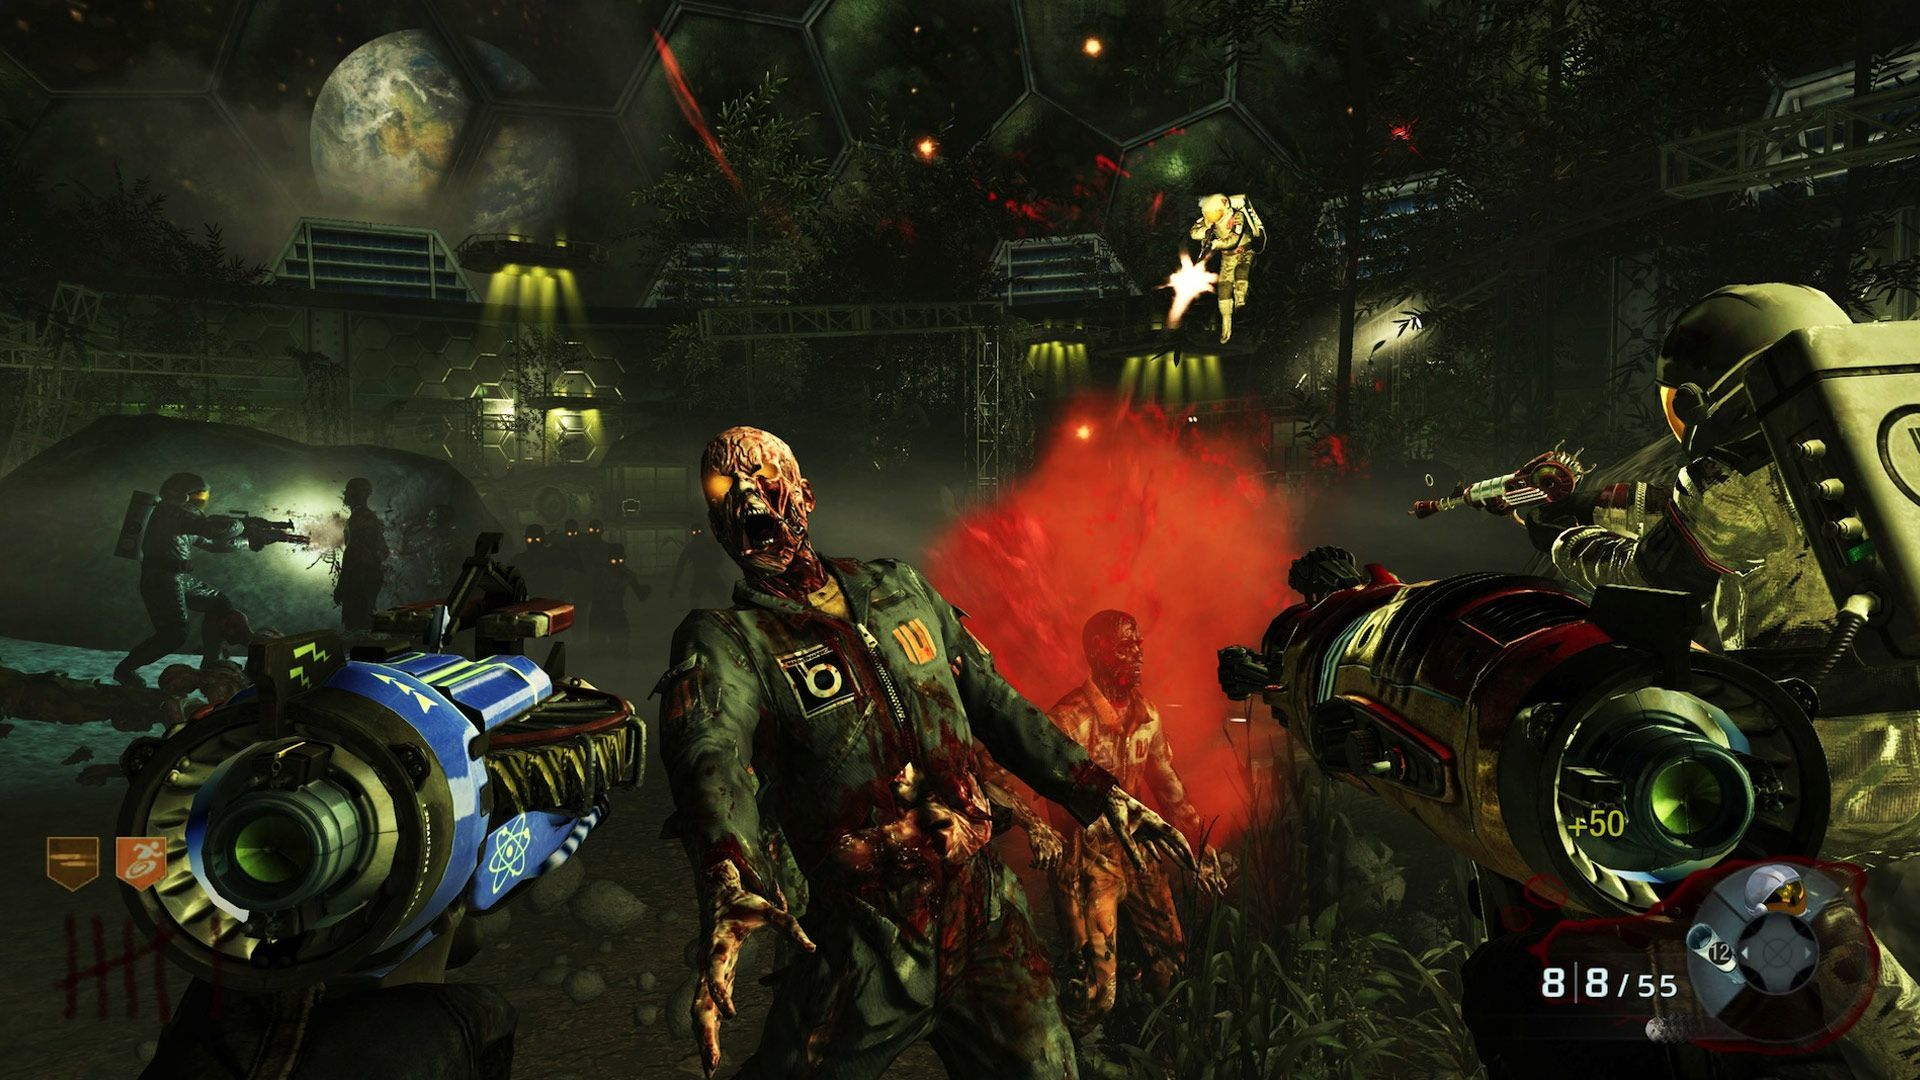 Steam Workshop :: Zombies on custom nazi zombies, call duty black ops zombies all maps, battletech maps, black ops 2 zombies maps, custom zombies tmg, custom zombies airport, custom zombies rocket base 10, custom cod zombies, star wars miniatures maps,